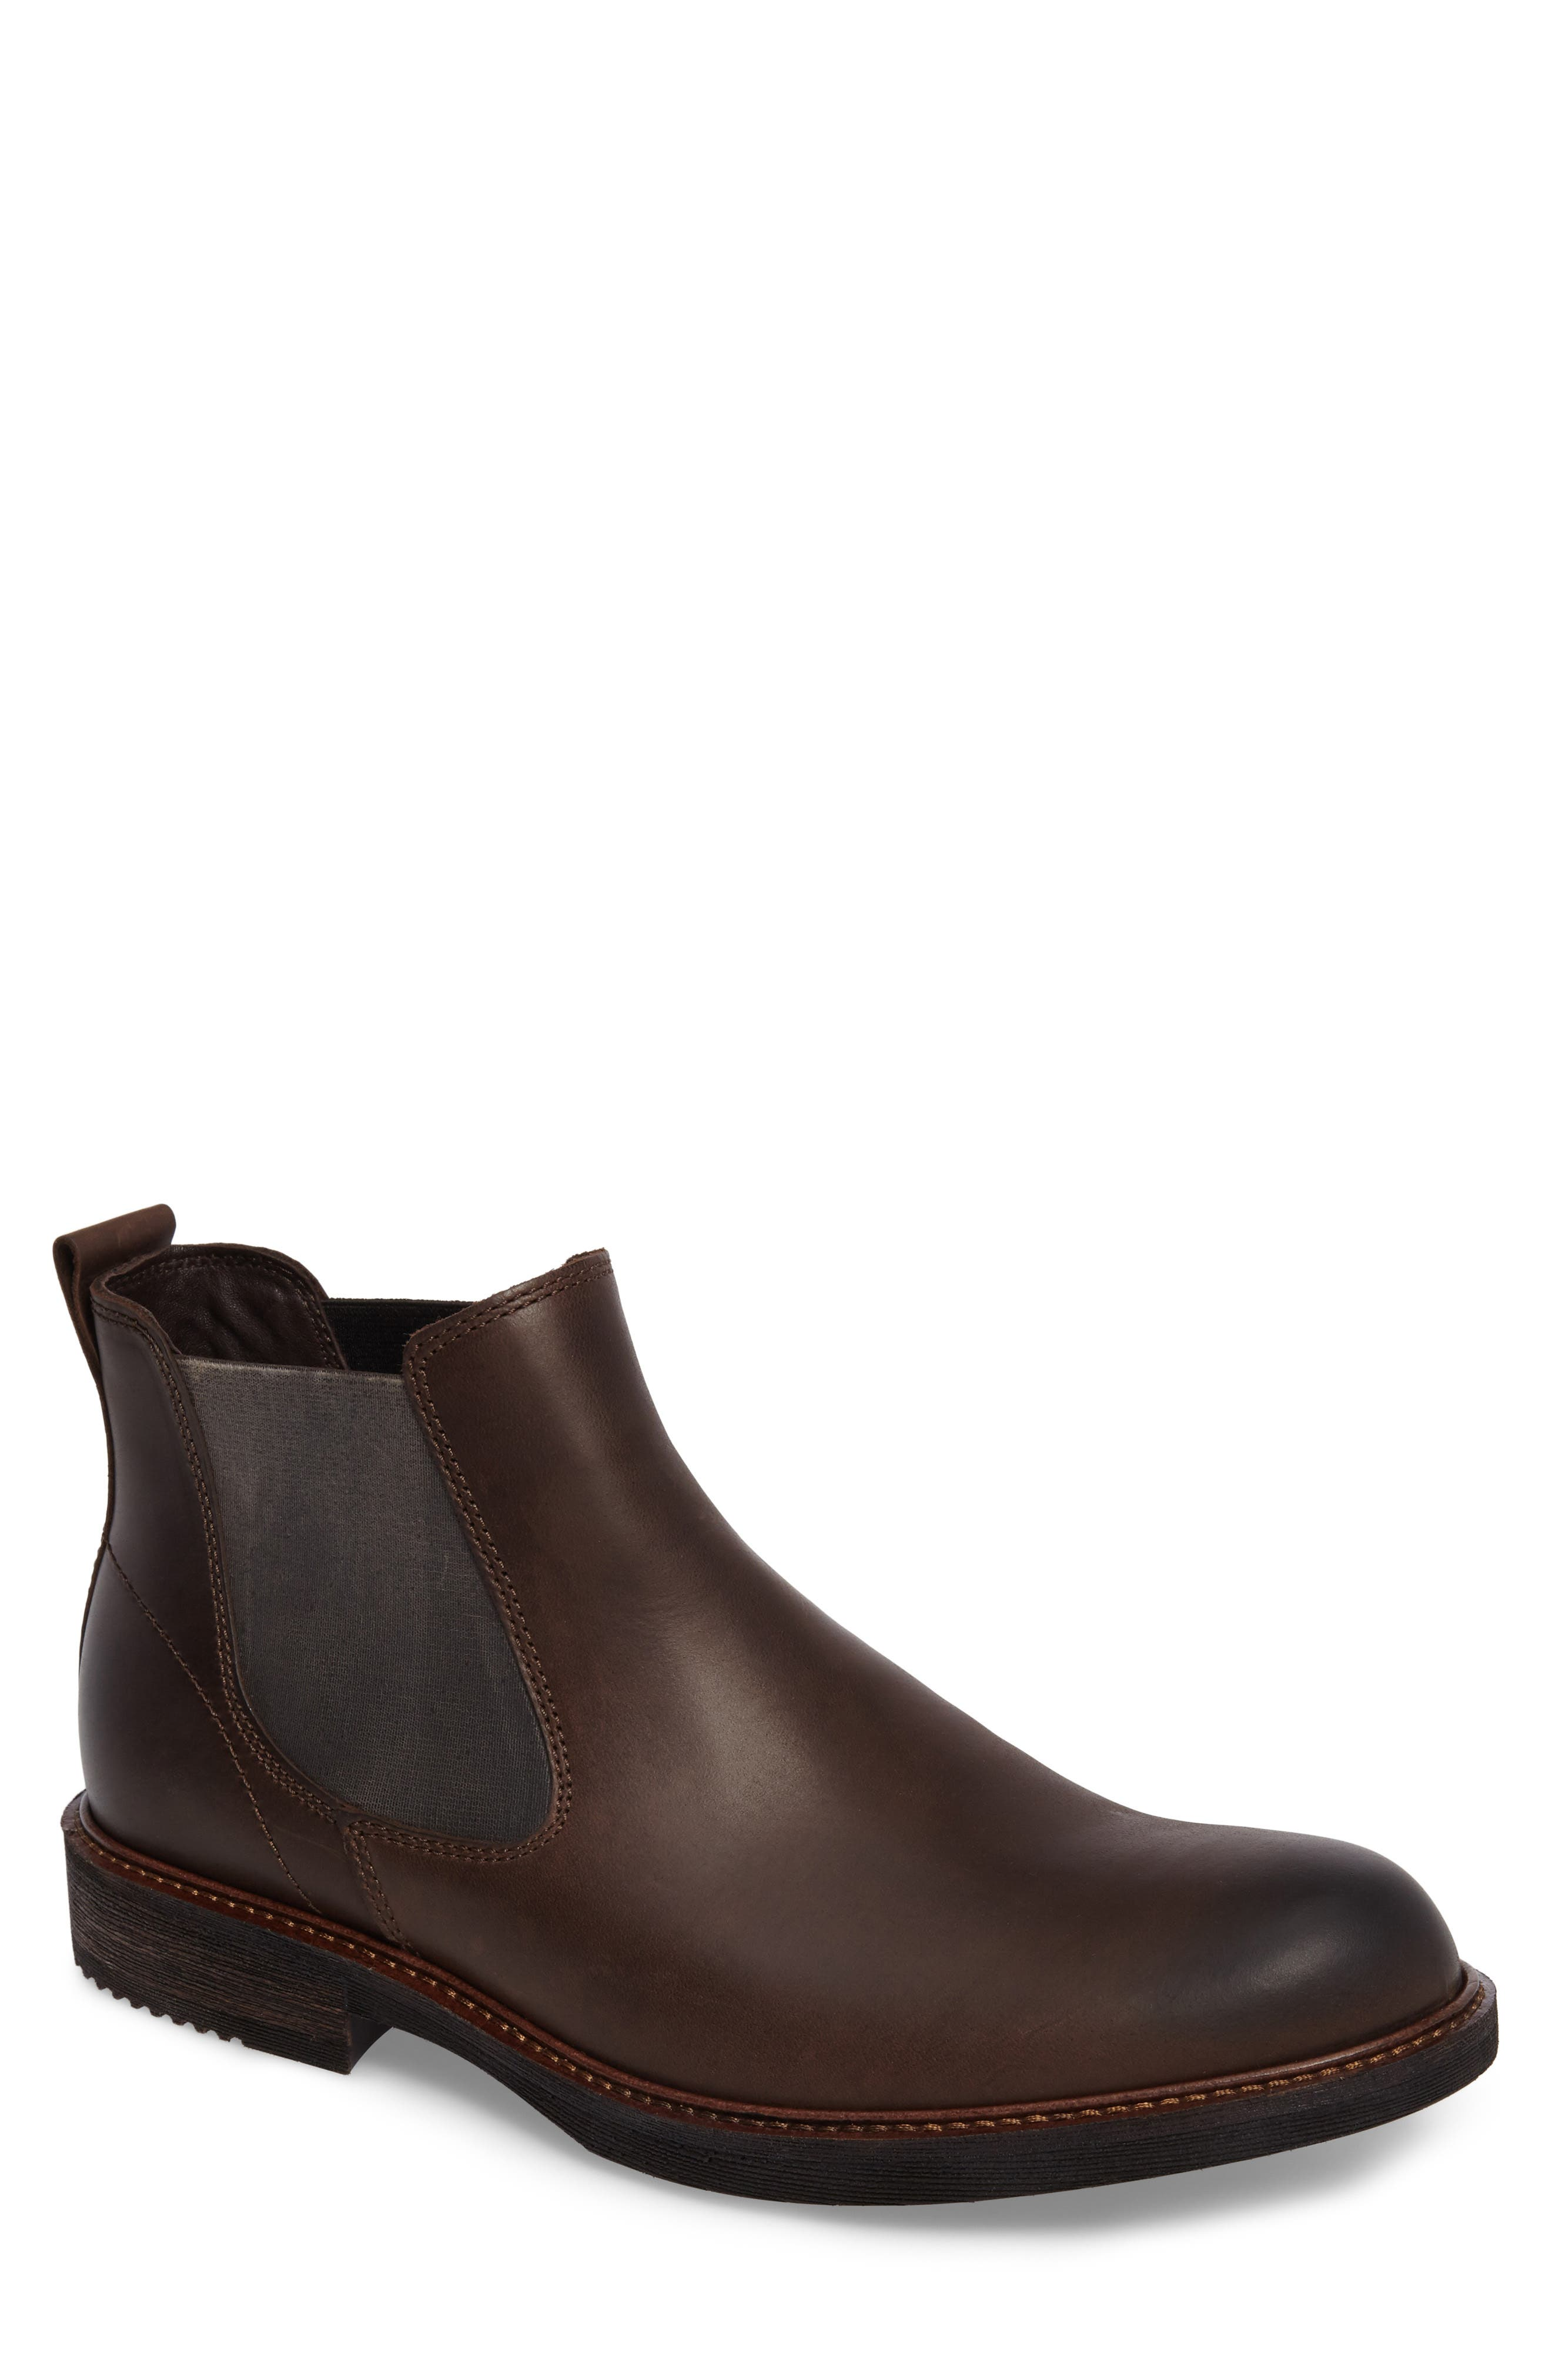 Kenton Chelsea Boot,                         Main,                         color, 217